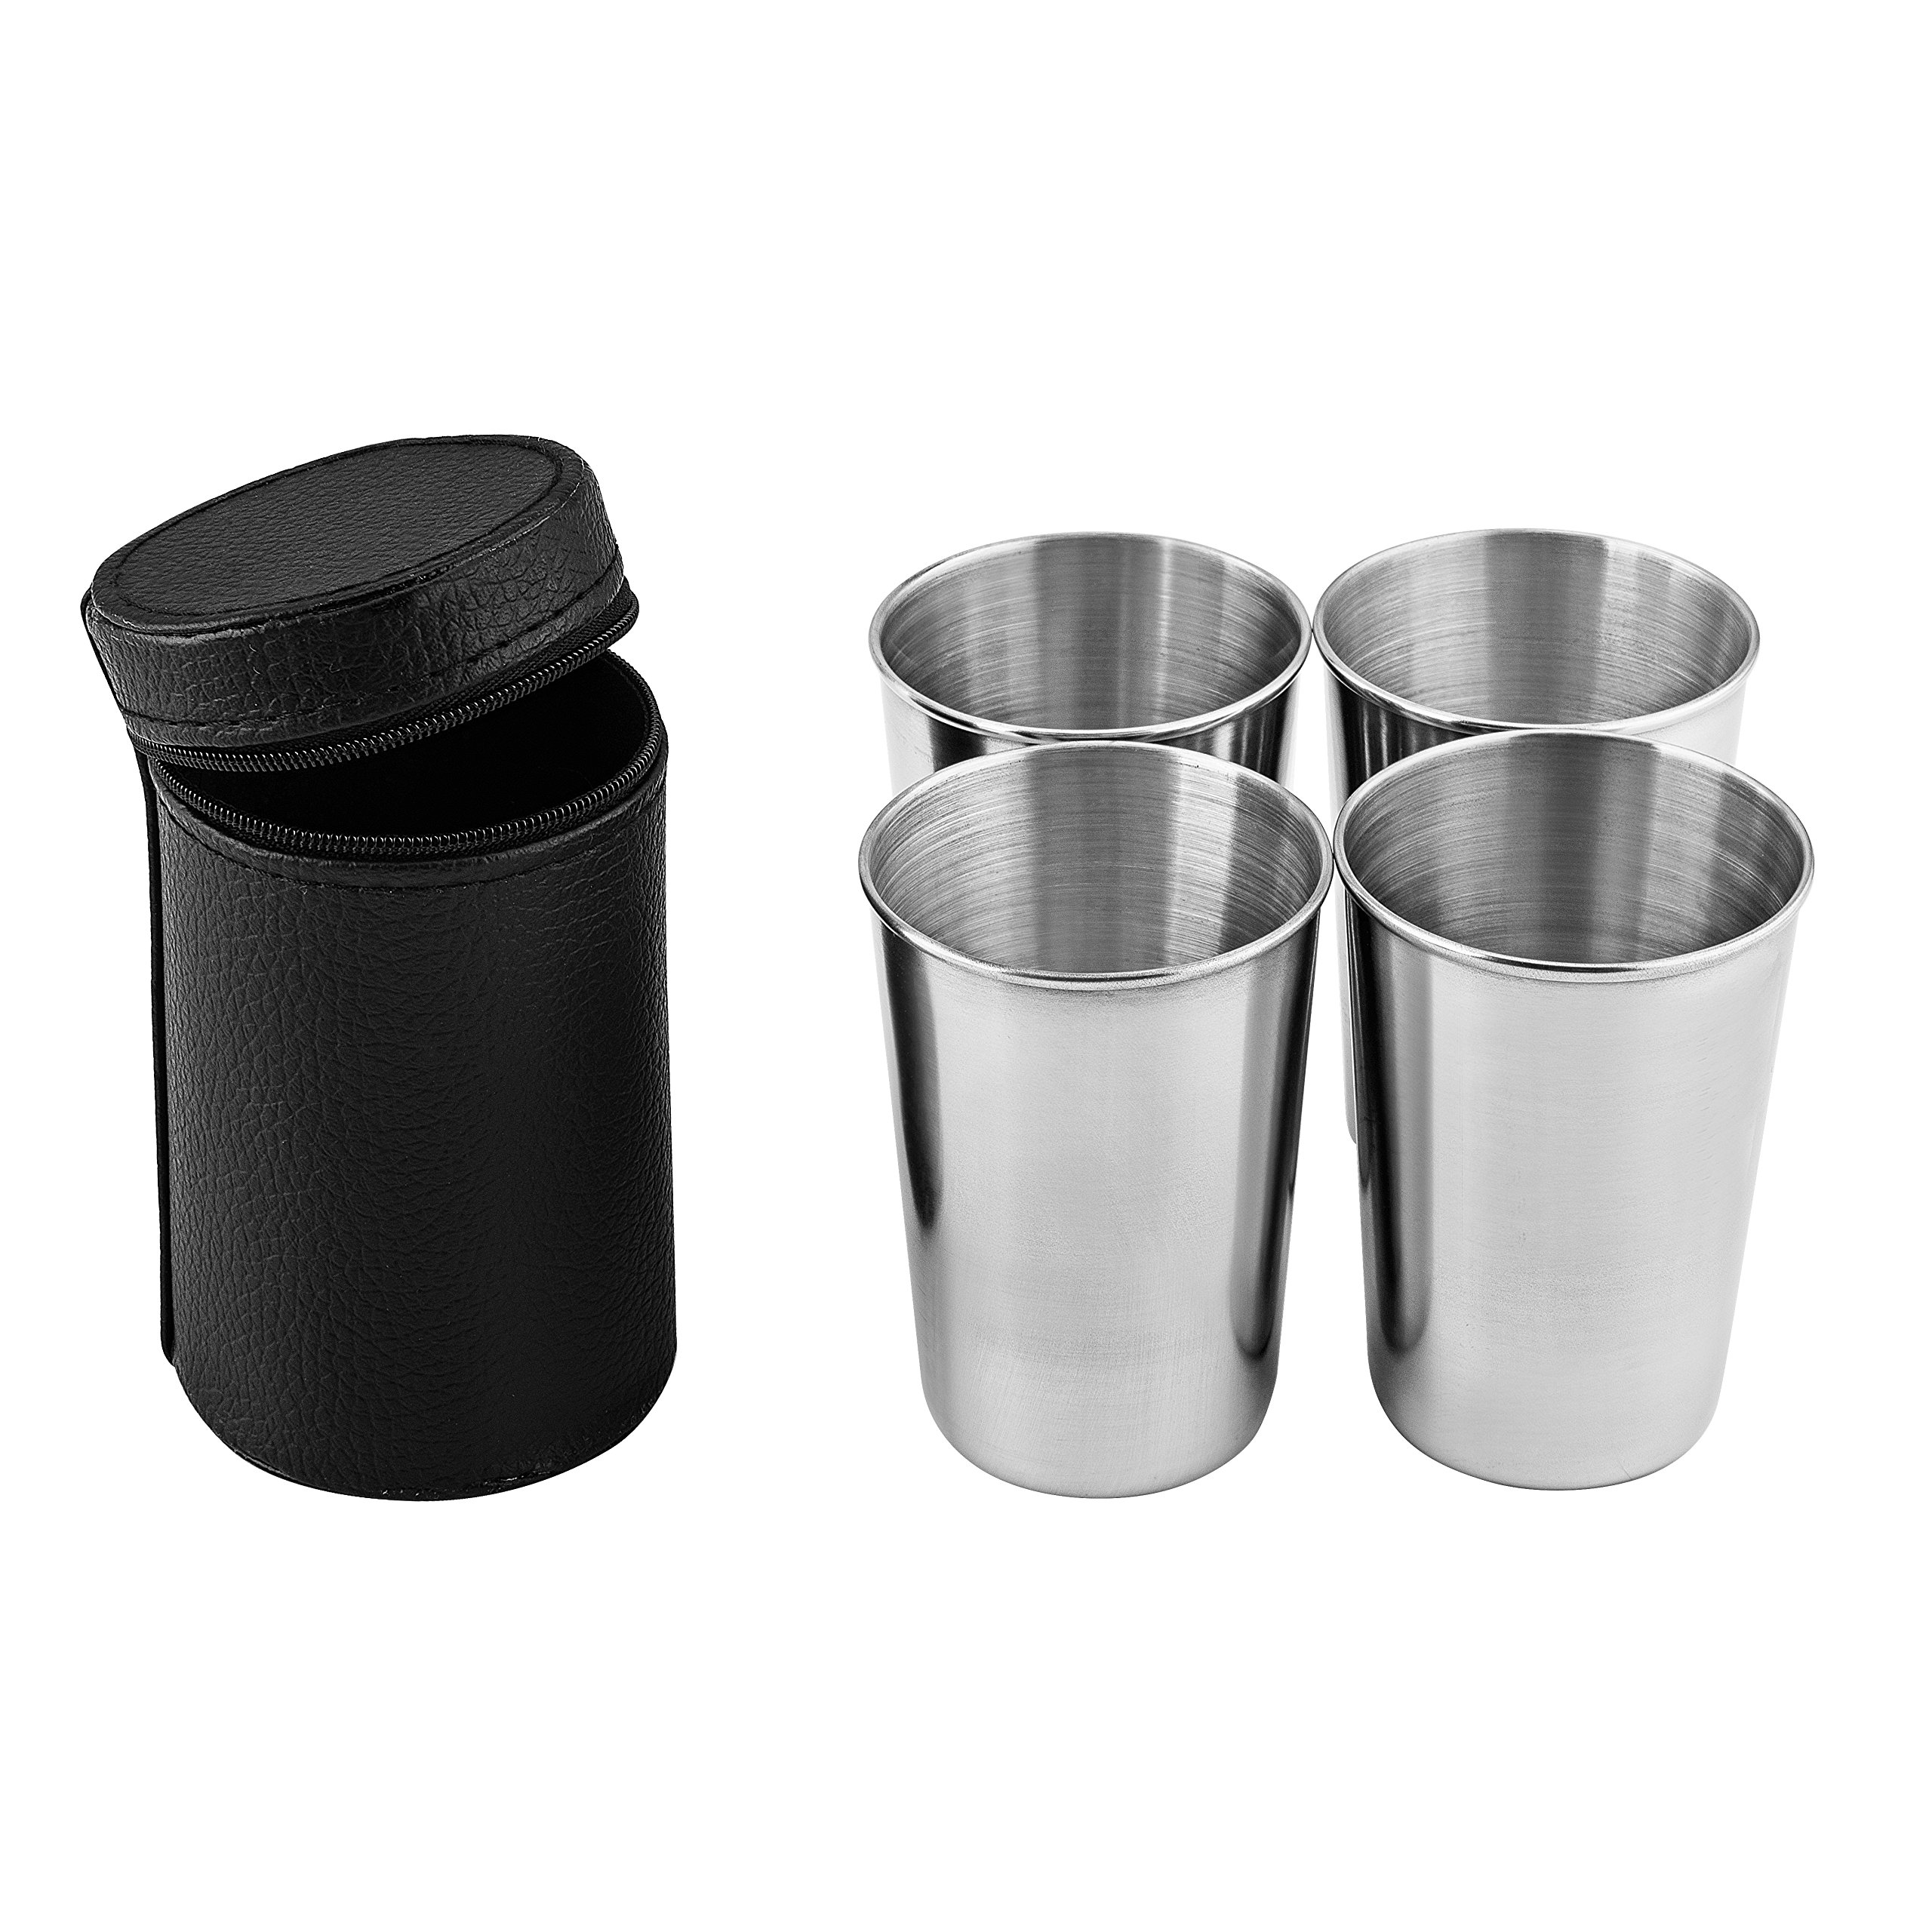 Virgin Forest Premium Stainless Steel Cups 6oz Pint Cup Tumbler (4 Pack) - Premium Metal Drinking Glasses - Stackable Durable Cups